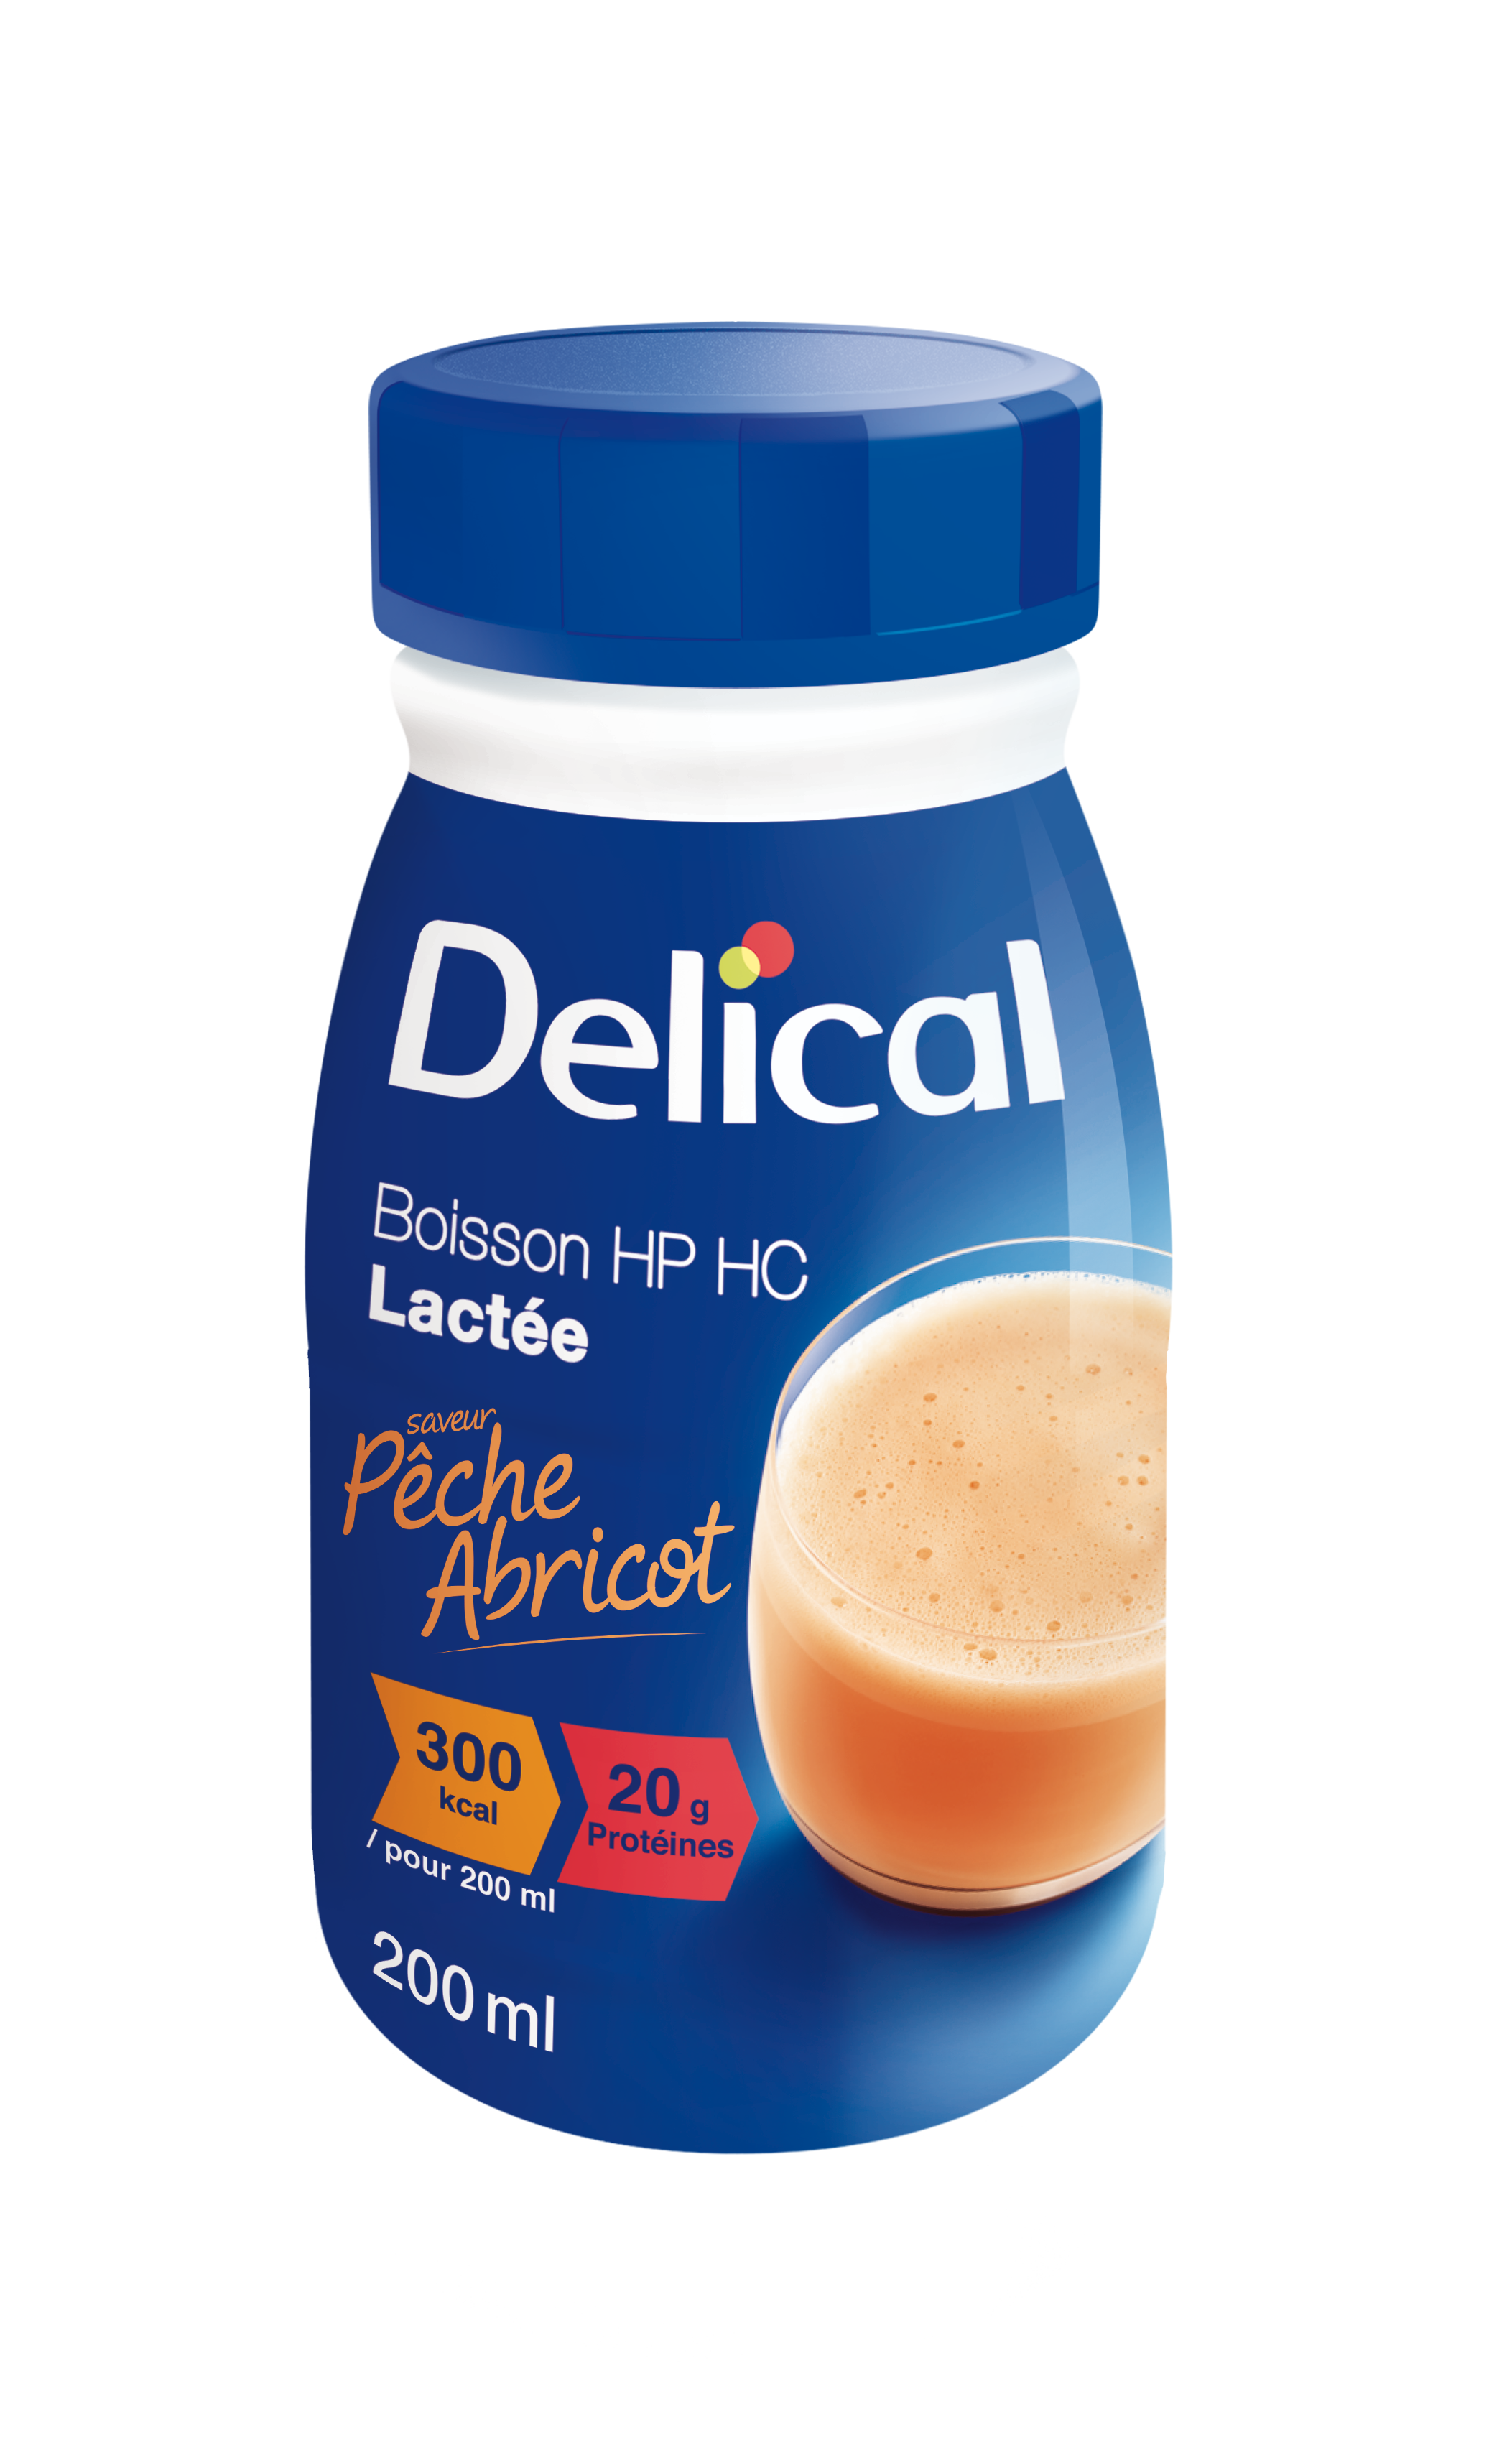 delical hp hc